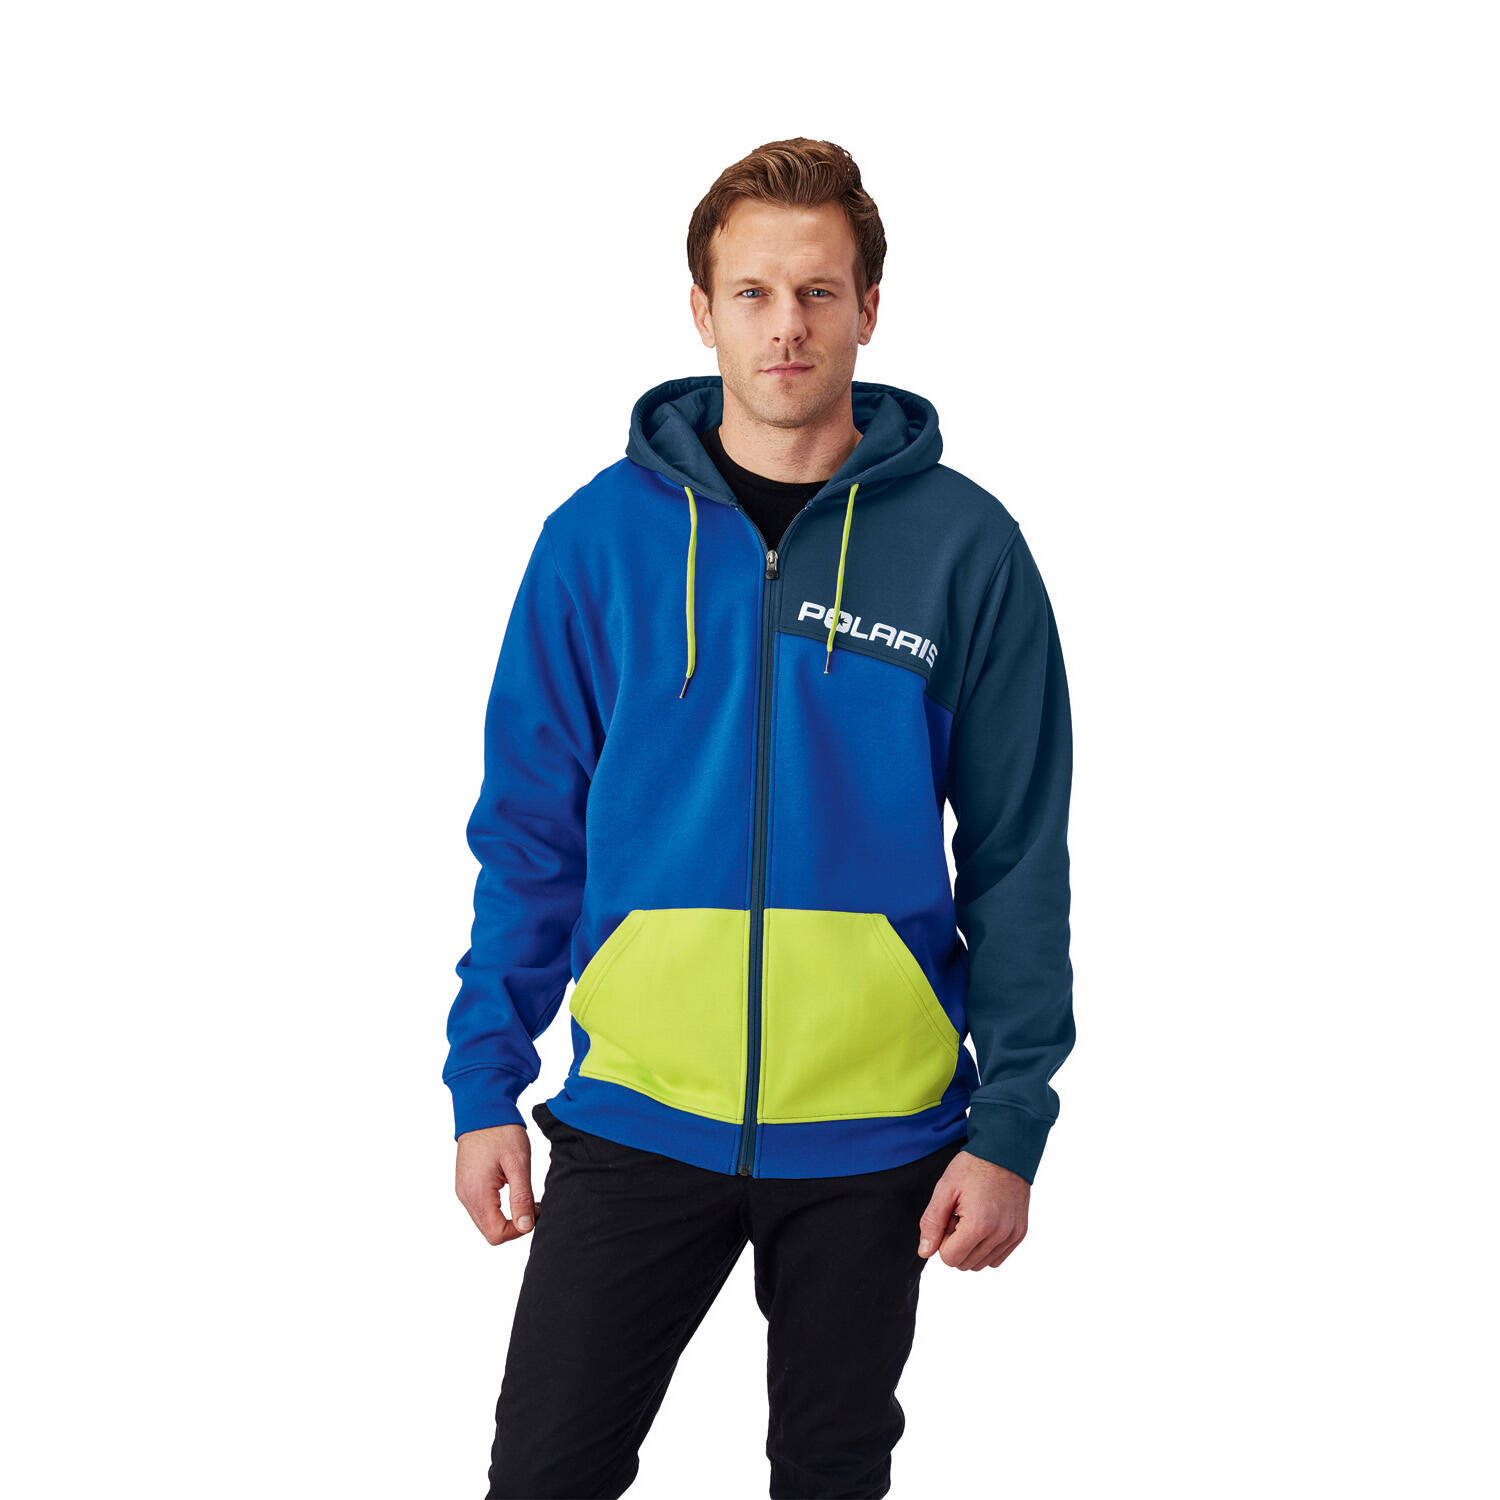 Men's Full-Zip Color Block Hoodie Sweatshirt with Polaris® Logo, Blue/Lime